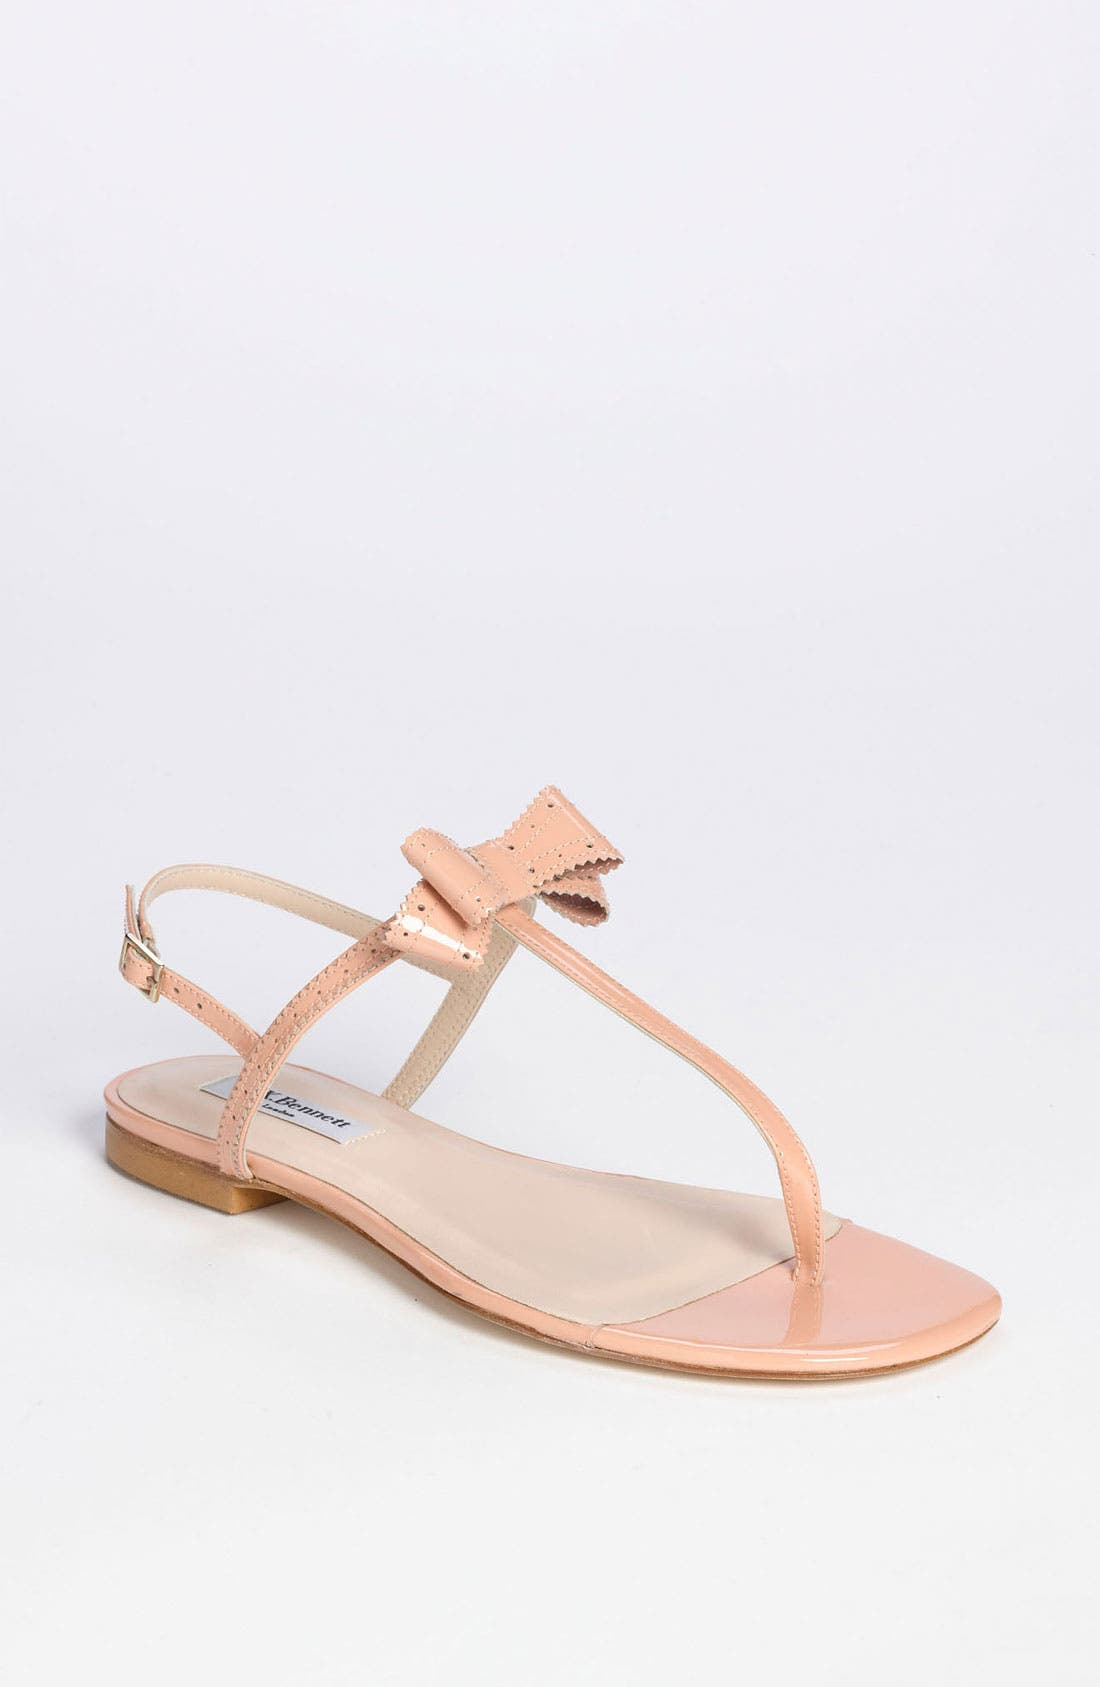 Alternate Image 1 Selected - L.K. Bennett 'Bondi' Sandal